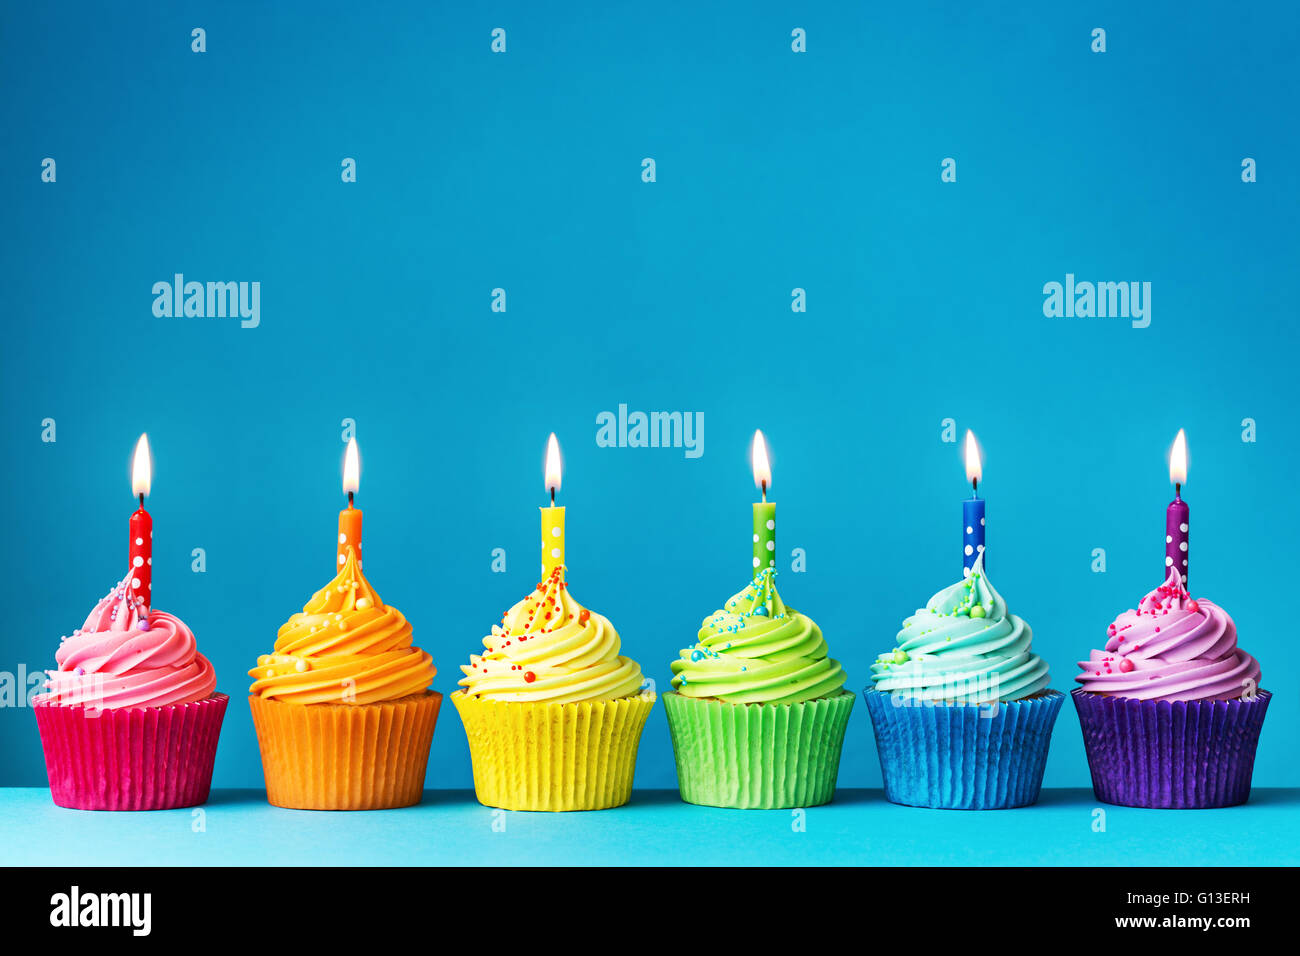 Birthday cupcakes in rainbow colors - Stock Image